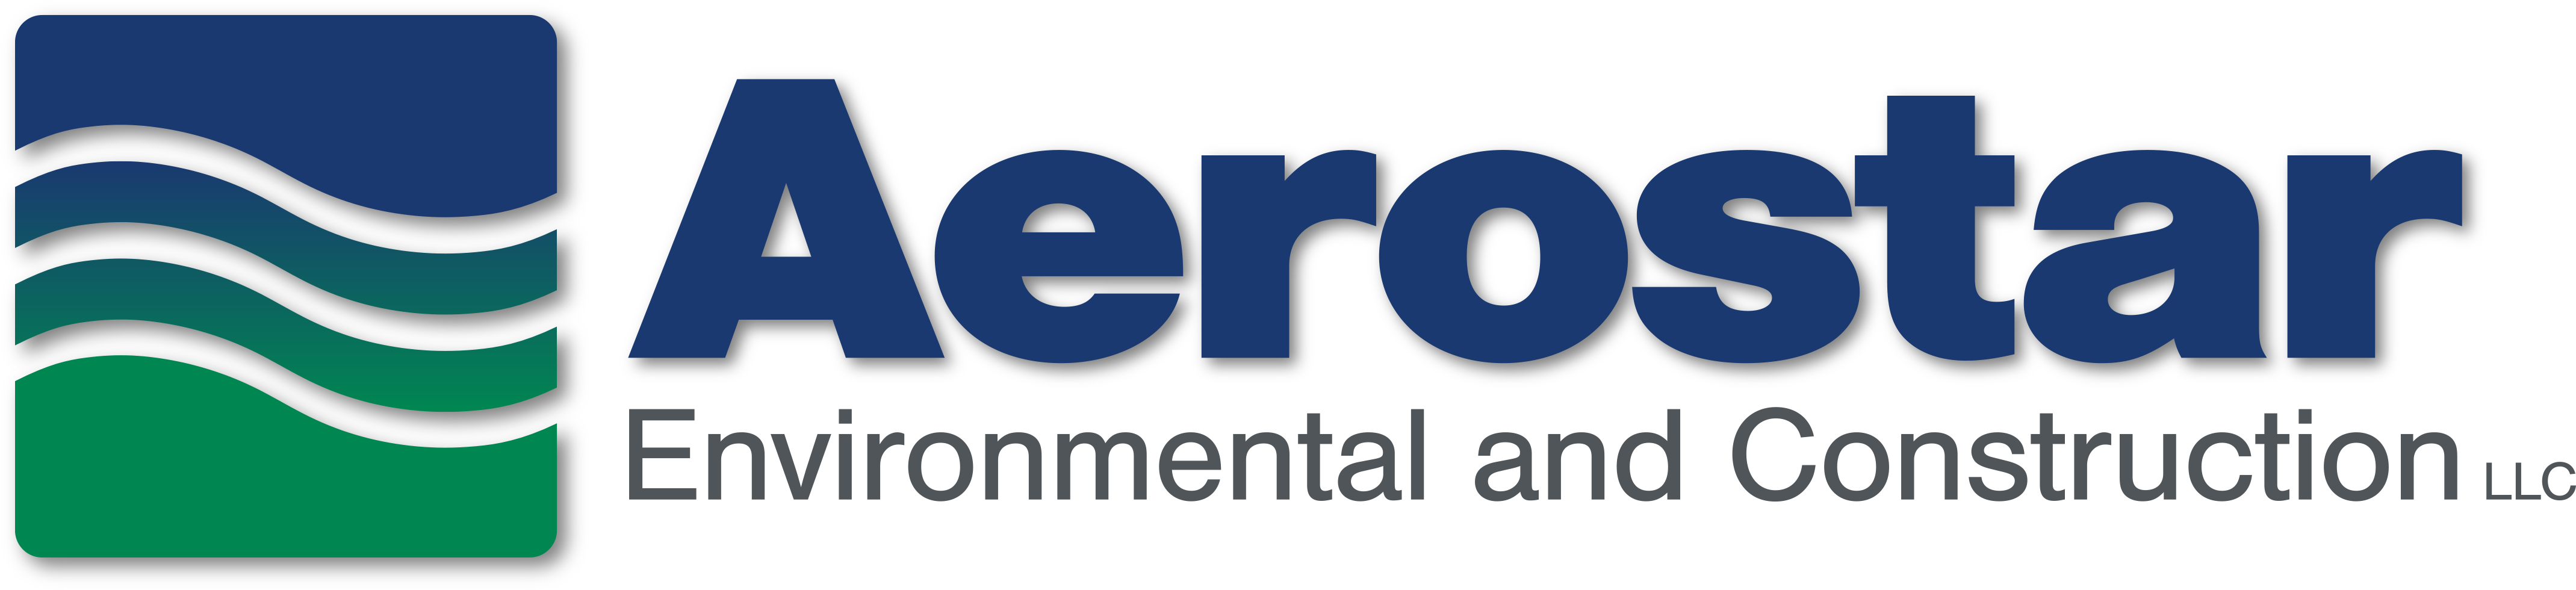 Aerostar Environmental and Construction LLC